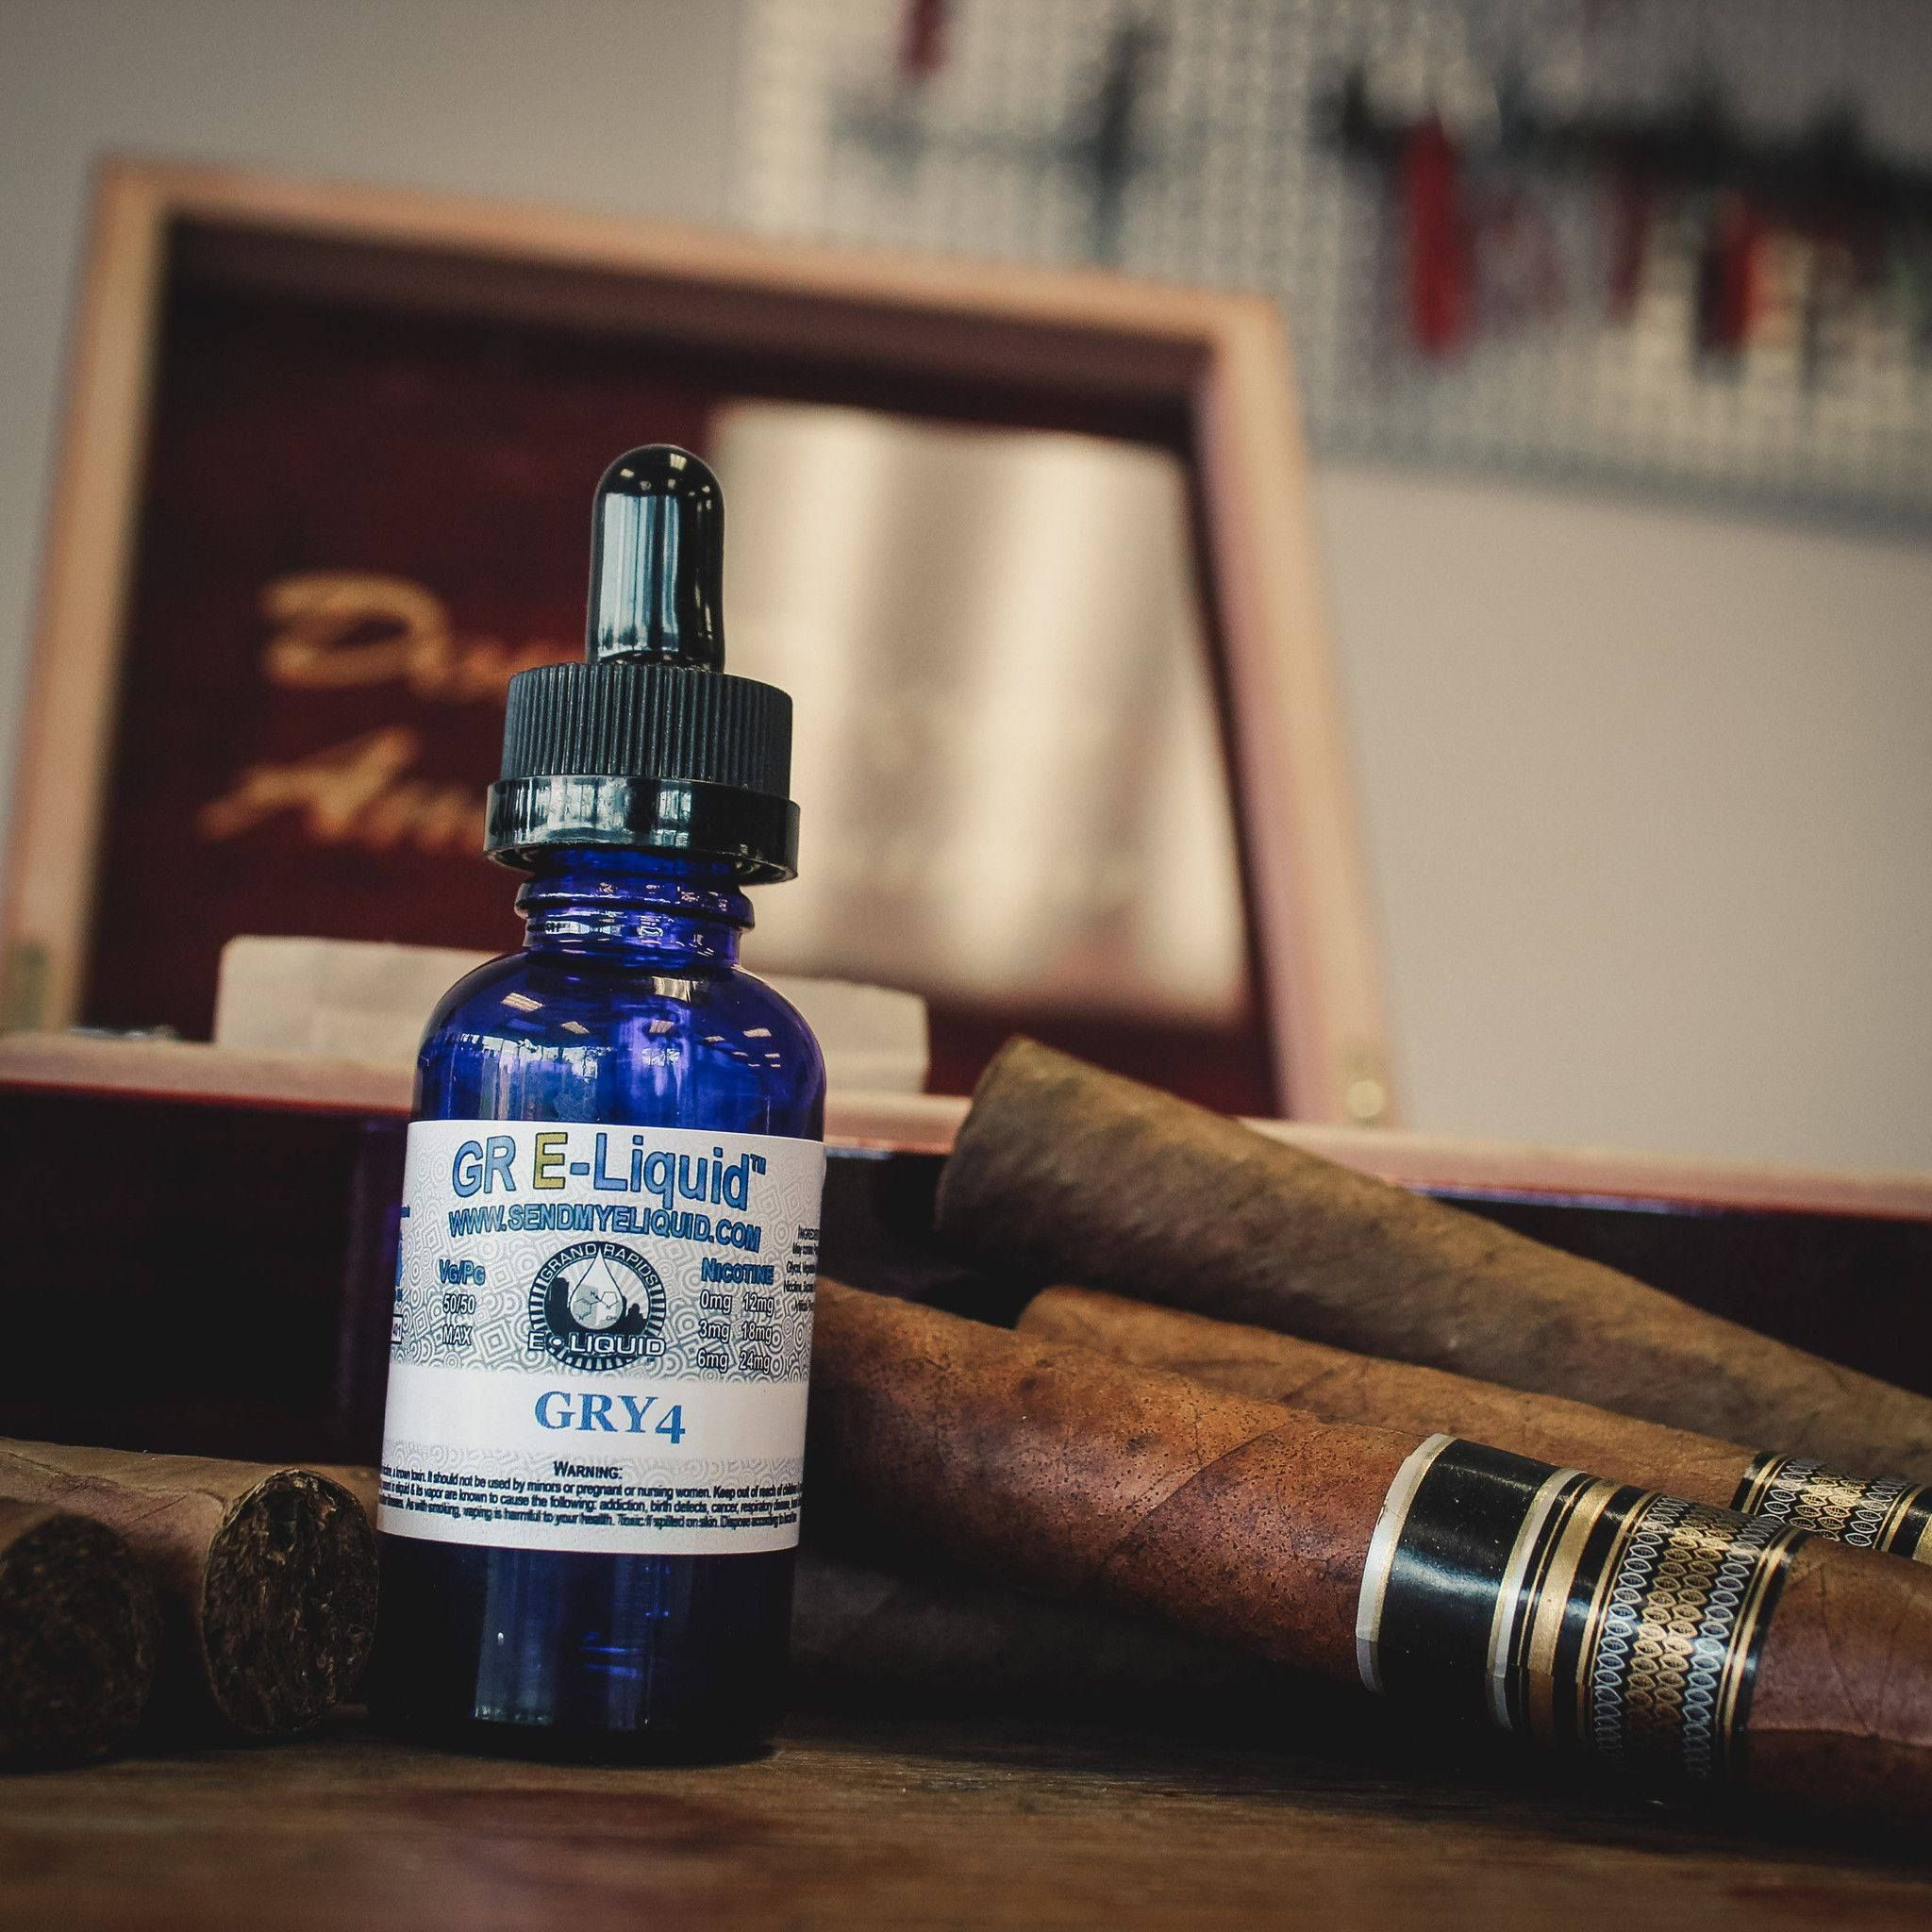 Super Juice Gry4 Is The Closest Thing To Real Tabaco I Have Found And Would Recommend It To Anyone Dan Deters Vape Juice Juice Flavors Green Drink Recipes